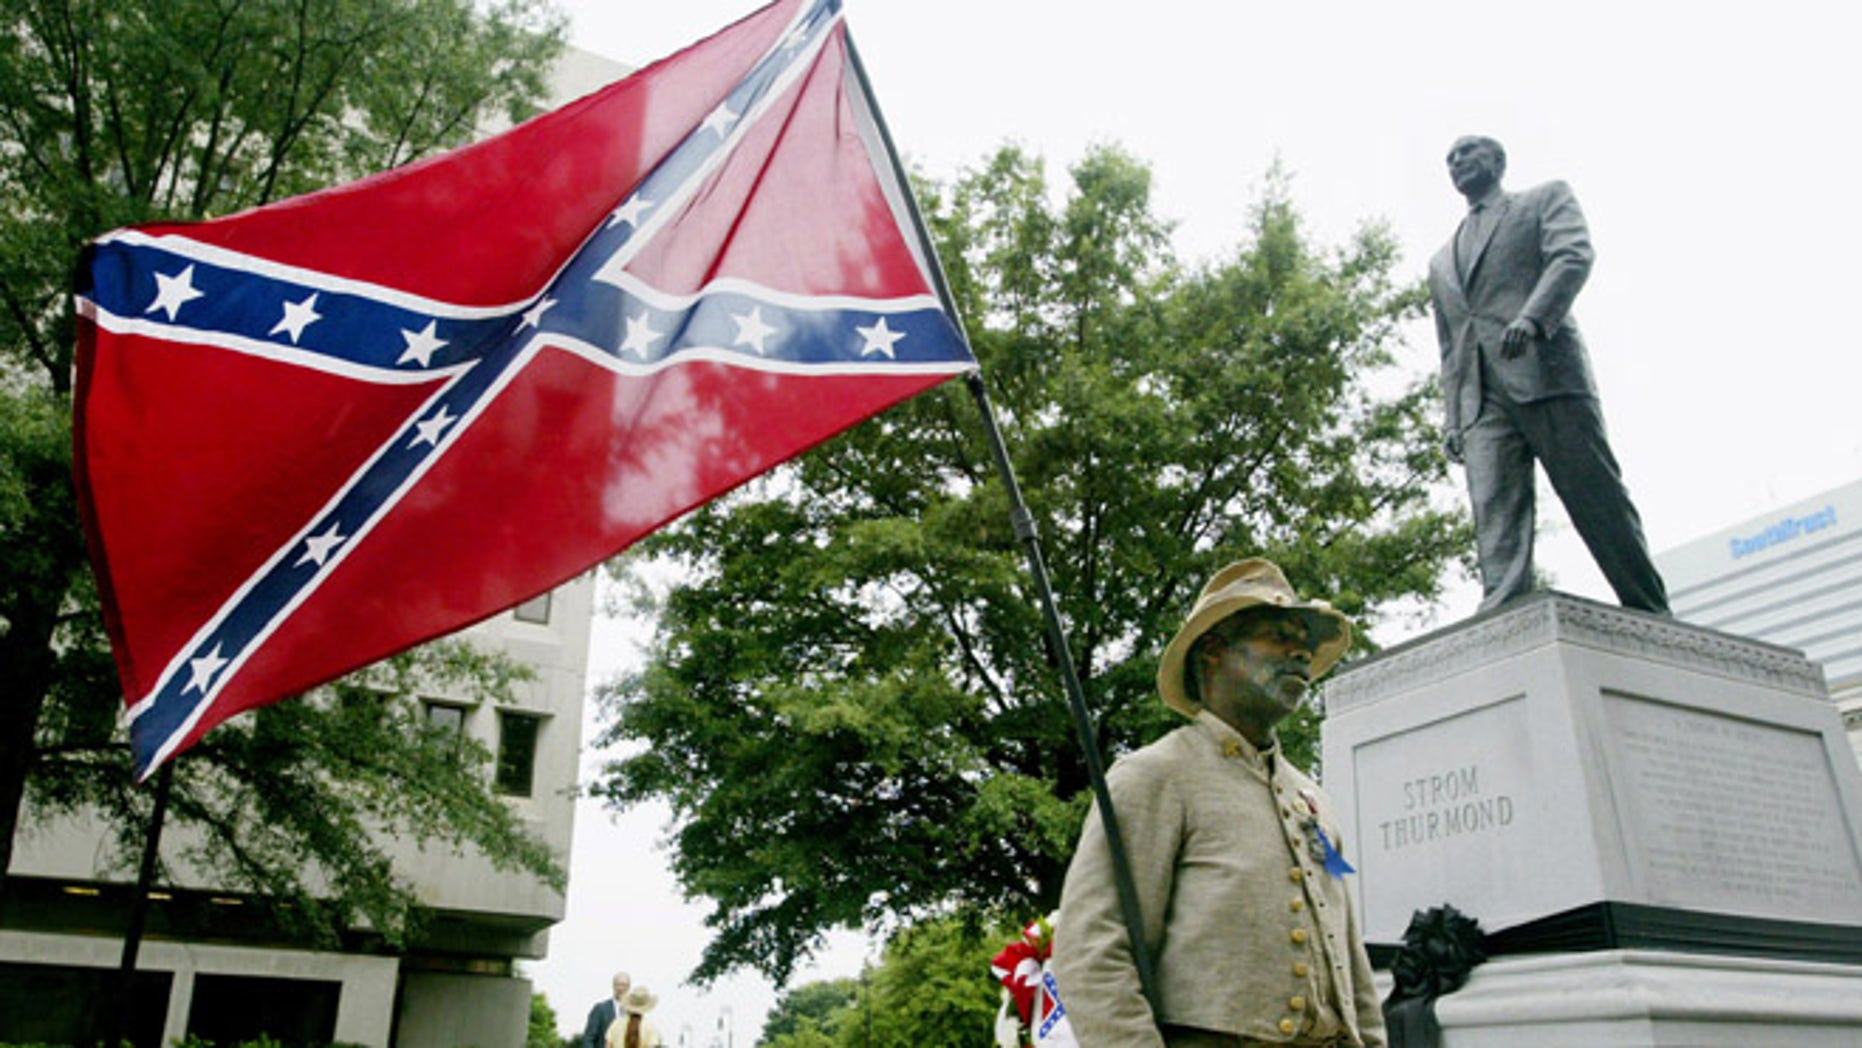 July 1, 2003: Wearing a Confederate uniform and the Stars and Bars of theConfederacy, H.K. Edgerton of Ashville, North Carolina stands beside astatue of former Sen. Strom Thurmond outside the state house in Columbia, South Carolina. (Reuters)